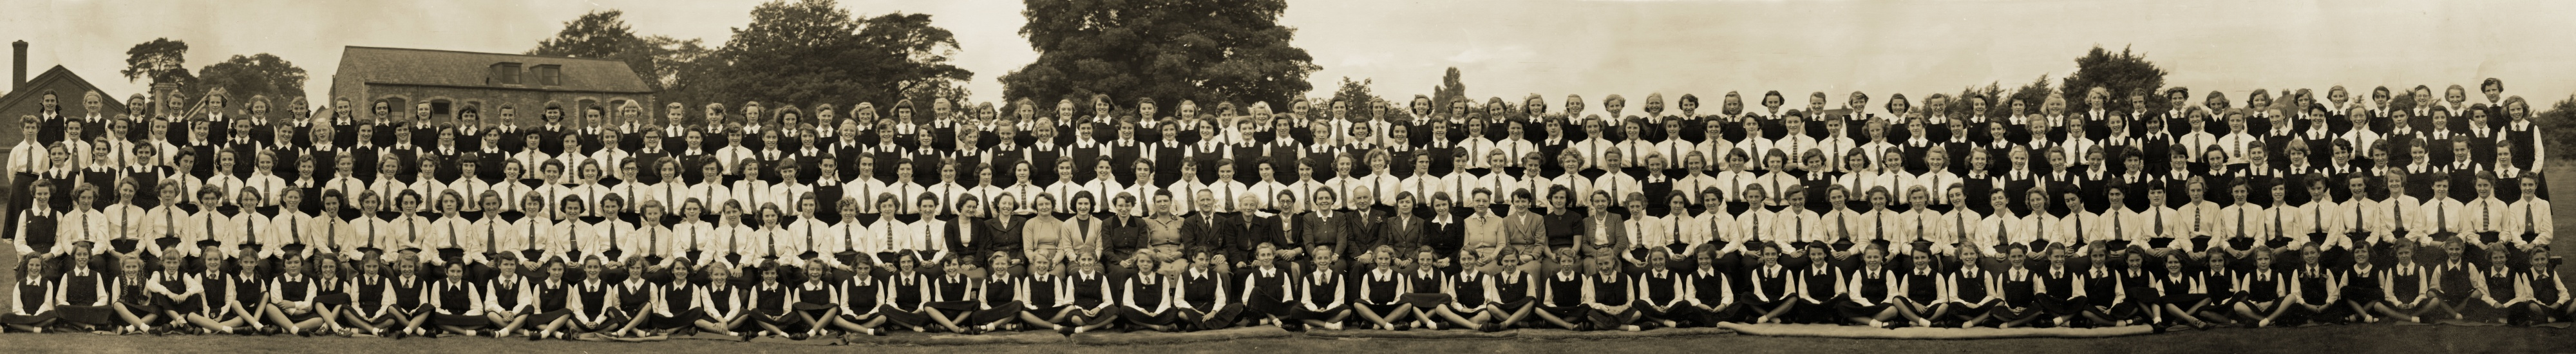 Quorn Rawlins Grammar School panoramic photograph, 1953